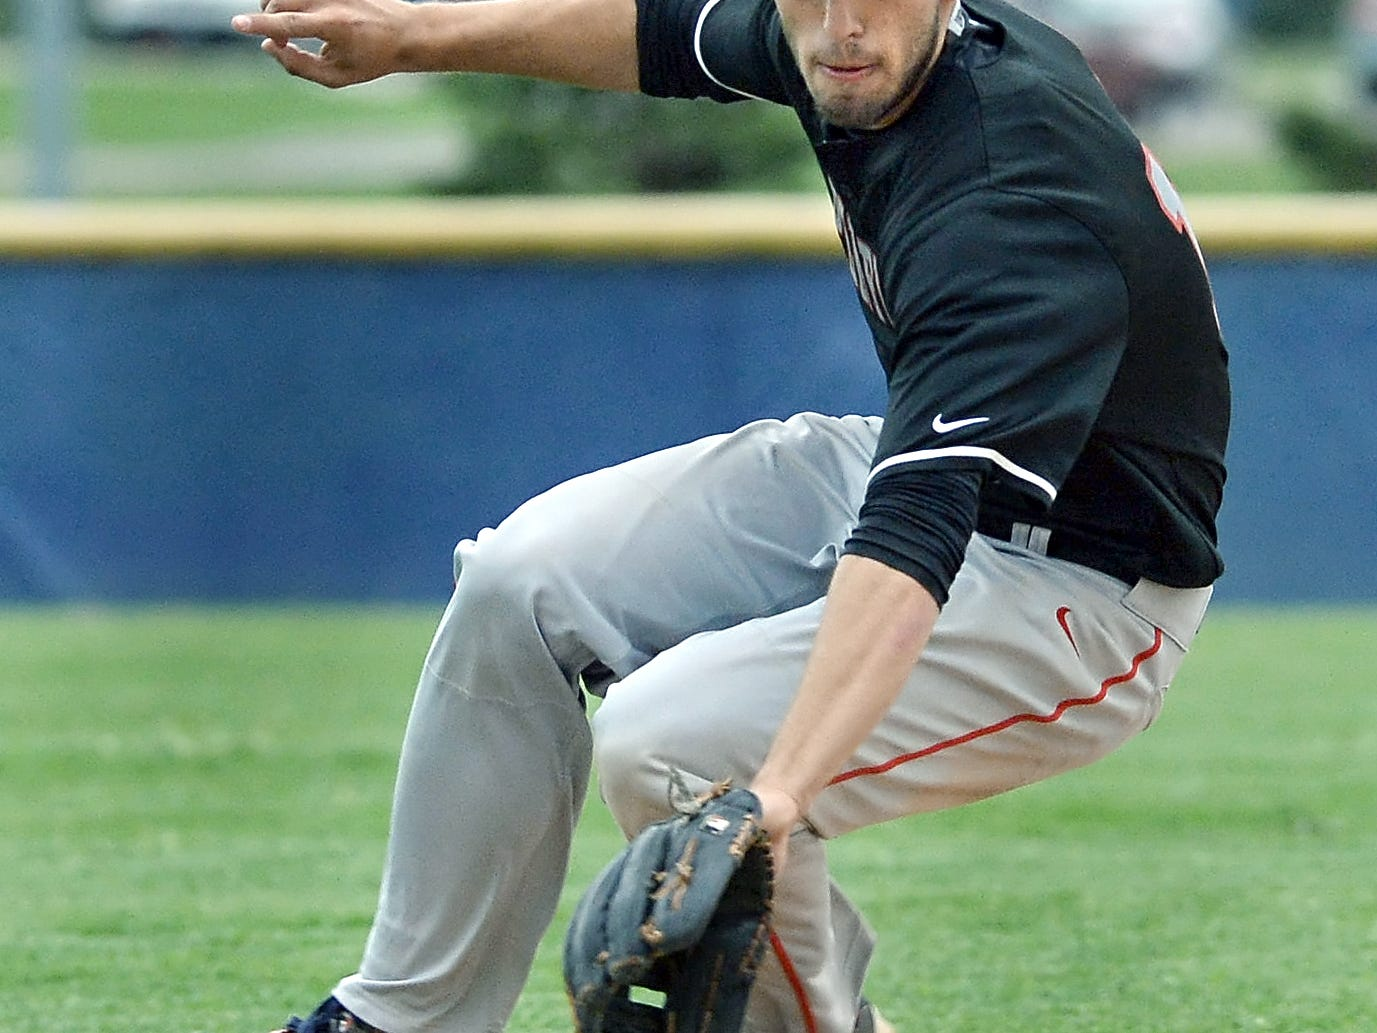 Penfield shortstop Colin Spencer knocks down a ground ball during a first-round game of the Class AA Sectionals played at Victor High School on Tuesday. No. 9 seed Penfield eliminated No. 8 seed Victor 5-4.